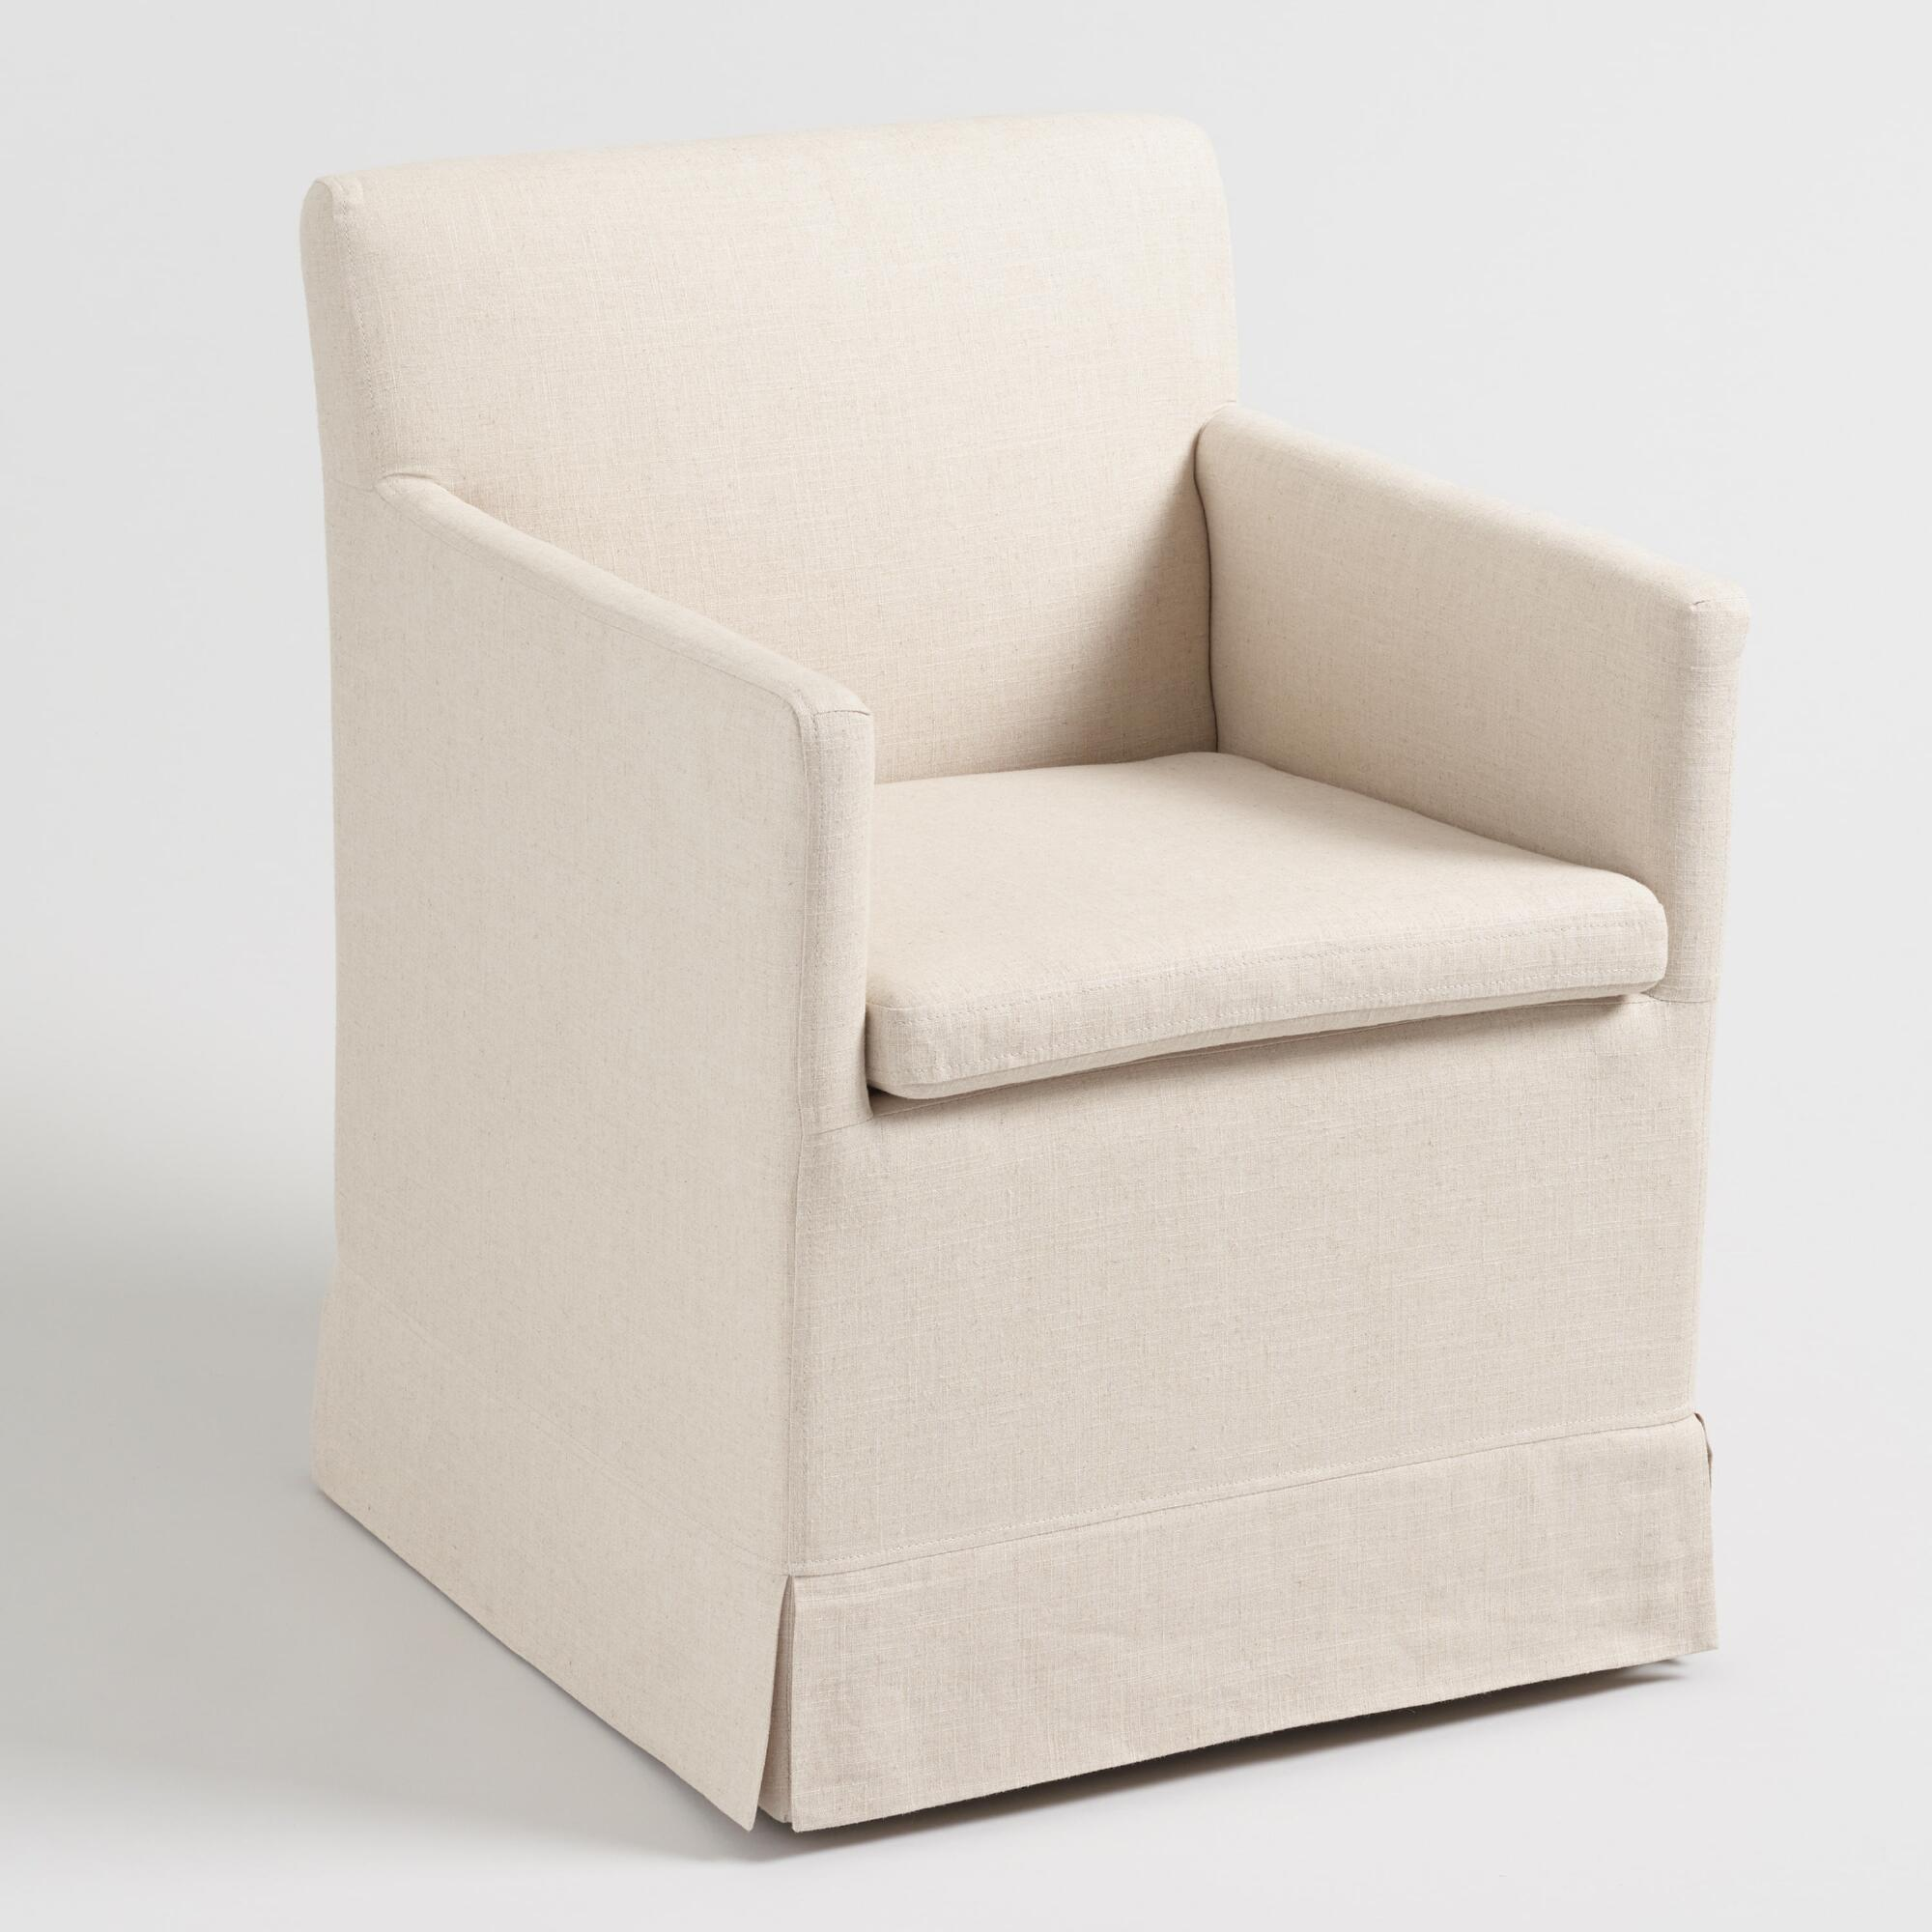 Natural Linen Armchair with Casters